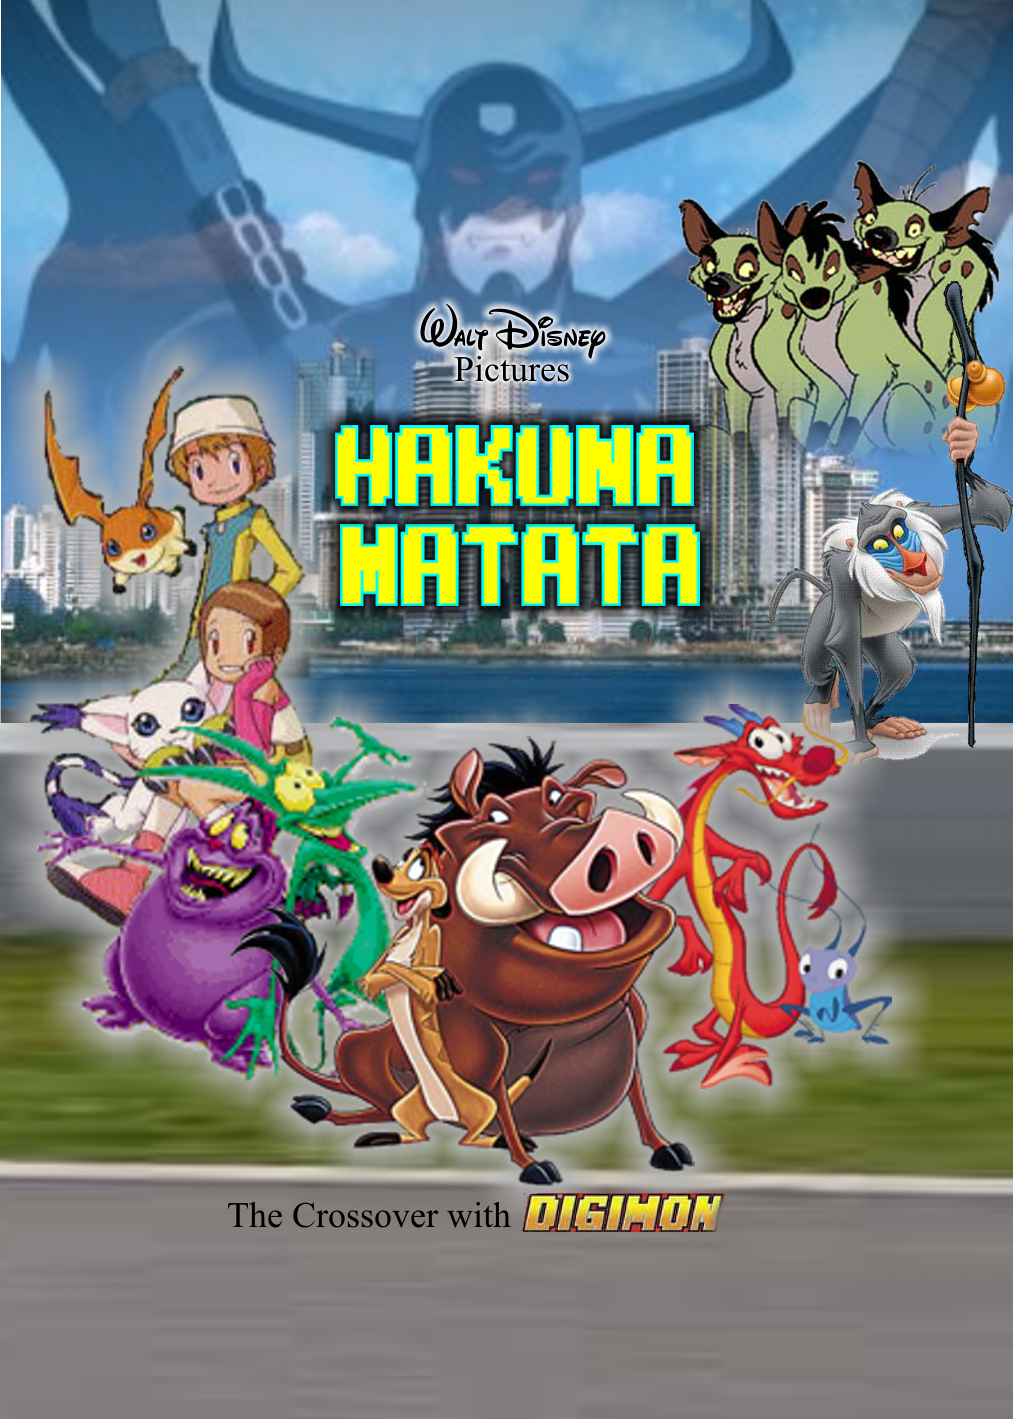 Disney's Hakuna Matata (in the crossover with Digimon)